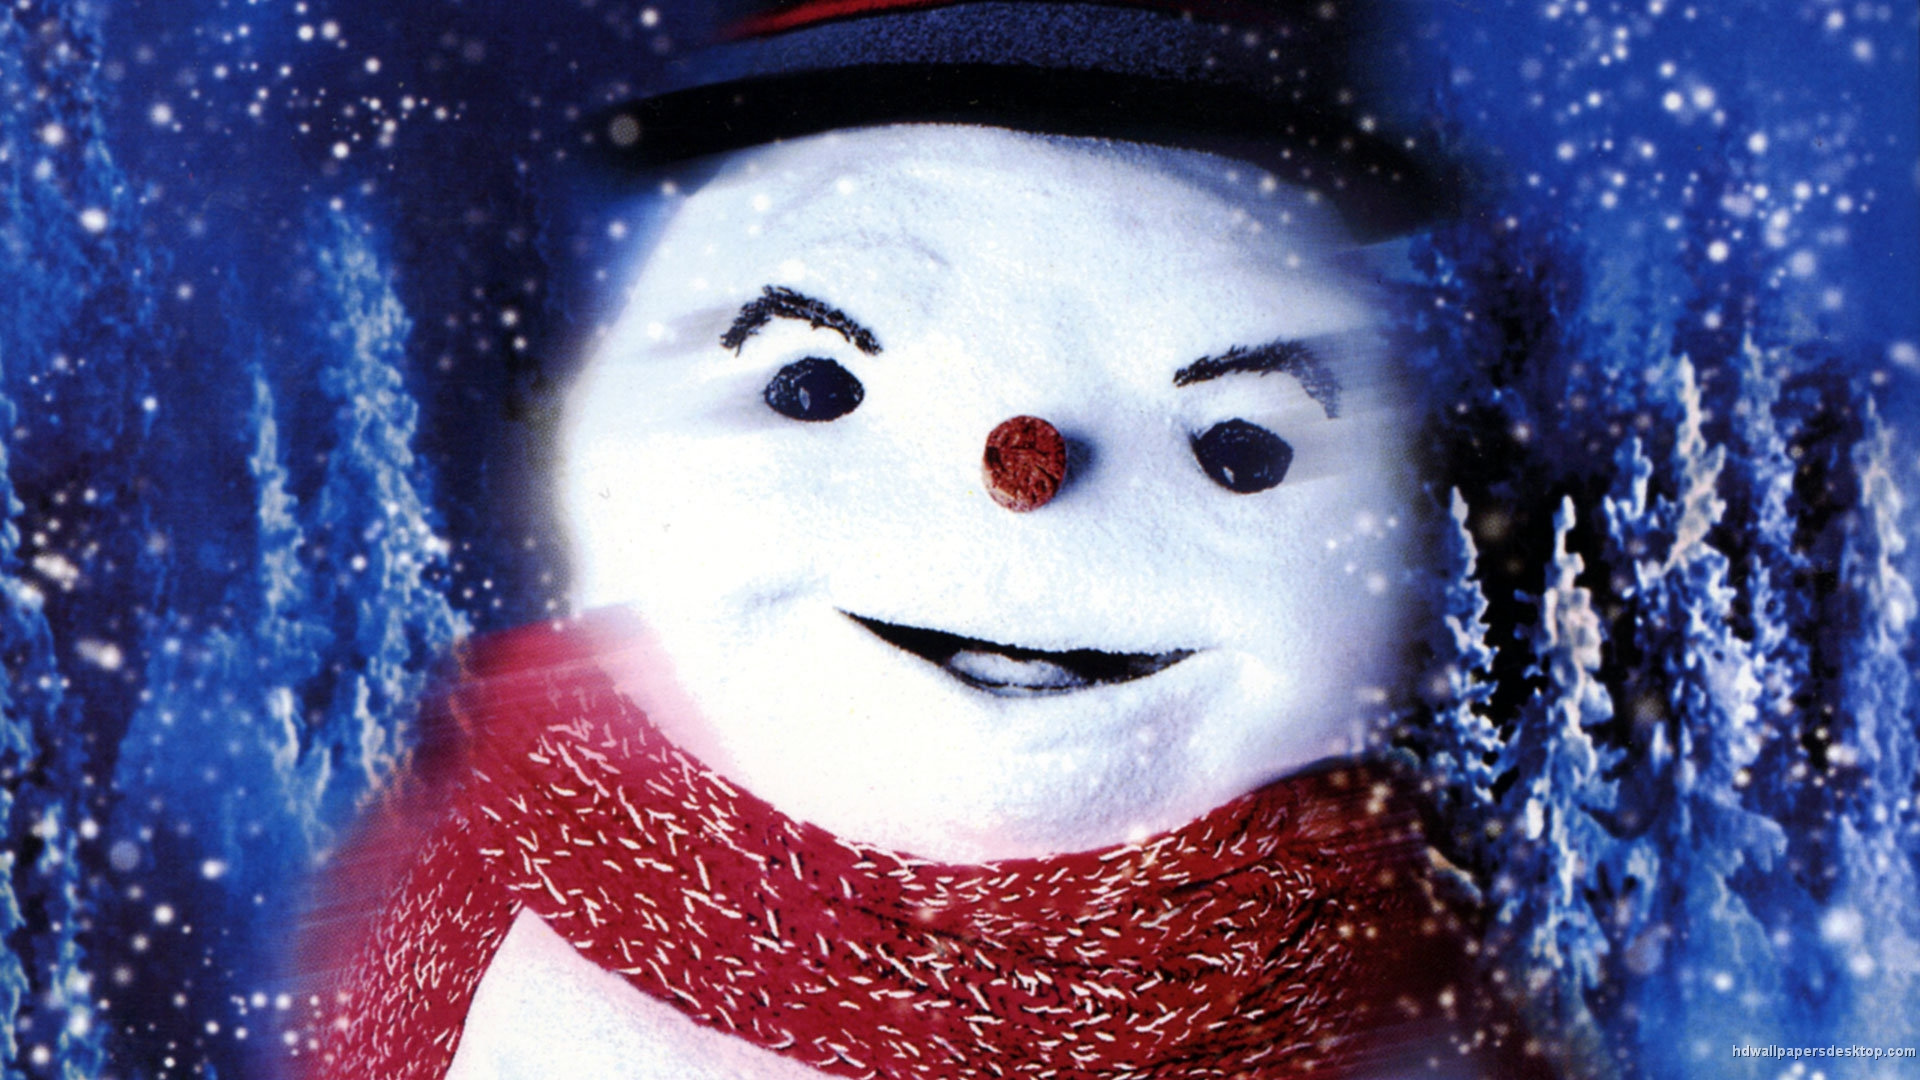 Jack Frost 1998 | Michael Keaton | Kelly Preston | Snowman | Christmas| Beyond The Box Set Podcast